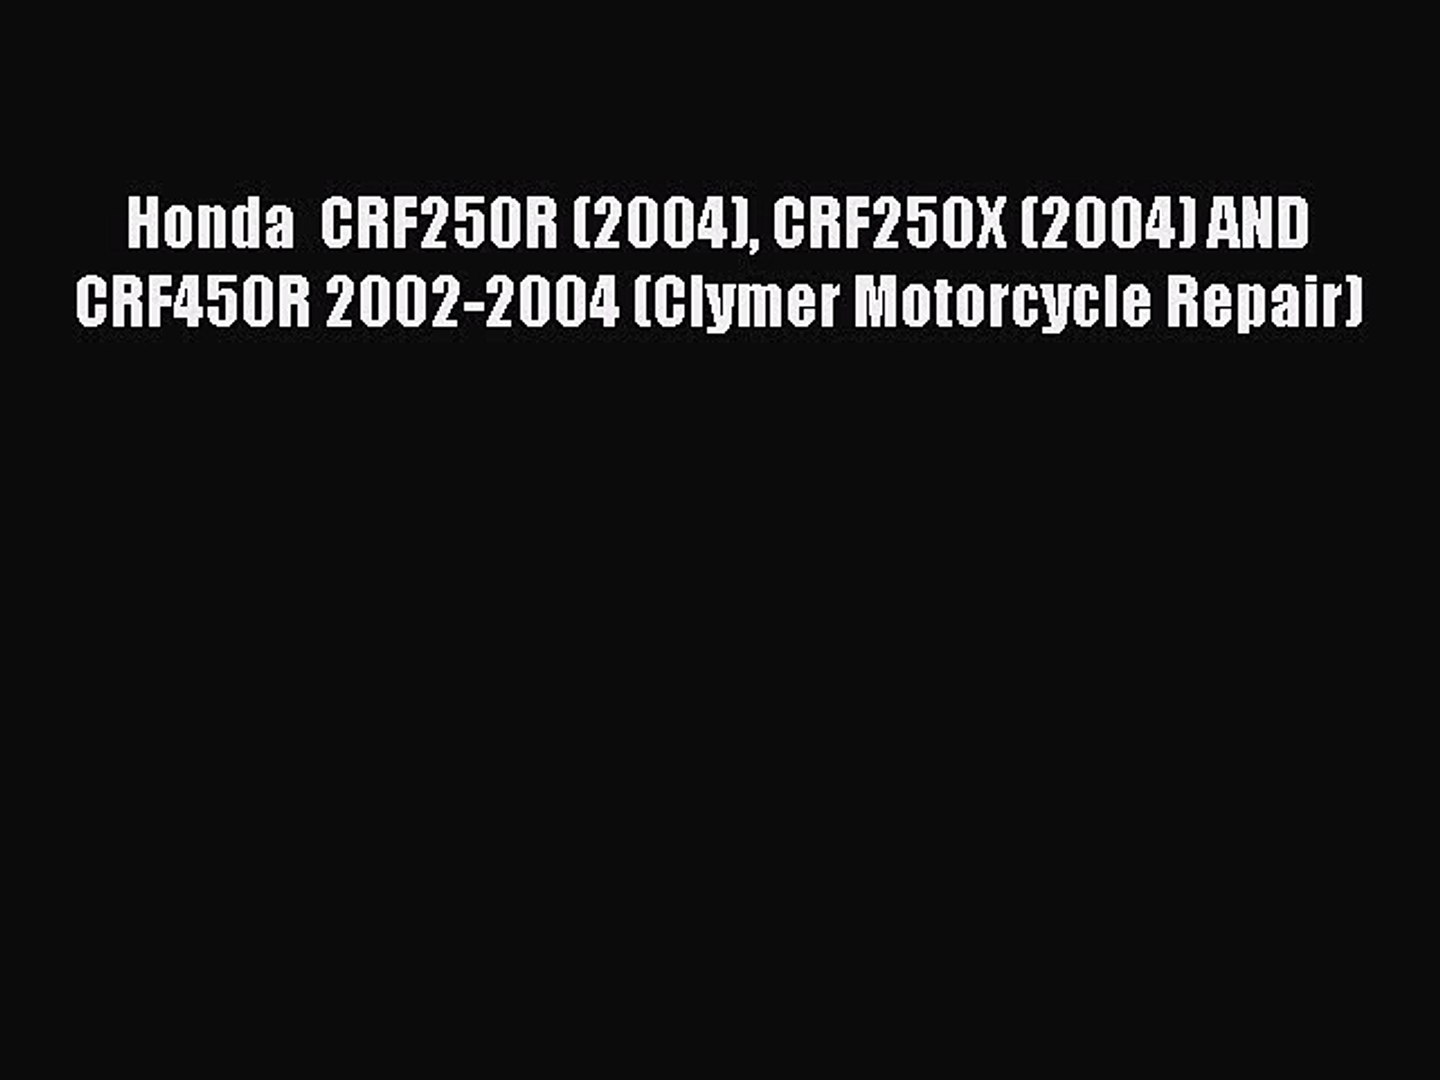 Read Books Honda  CRF250R (2004) CRF250X (2004) AND CRF450R 2002-2004 (Clymer Motorcycle Repair)